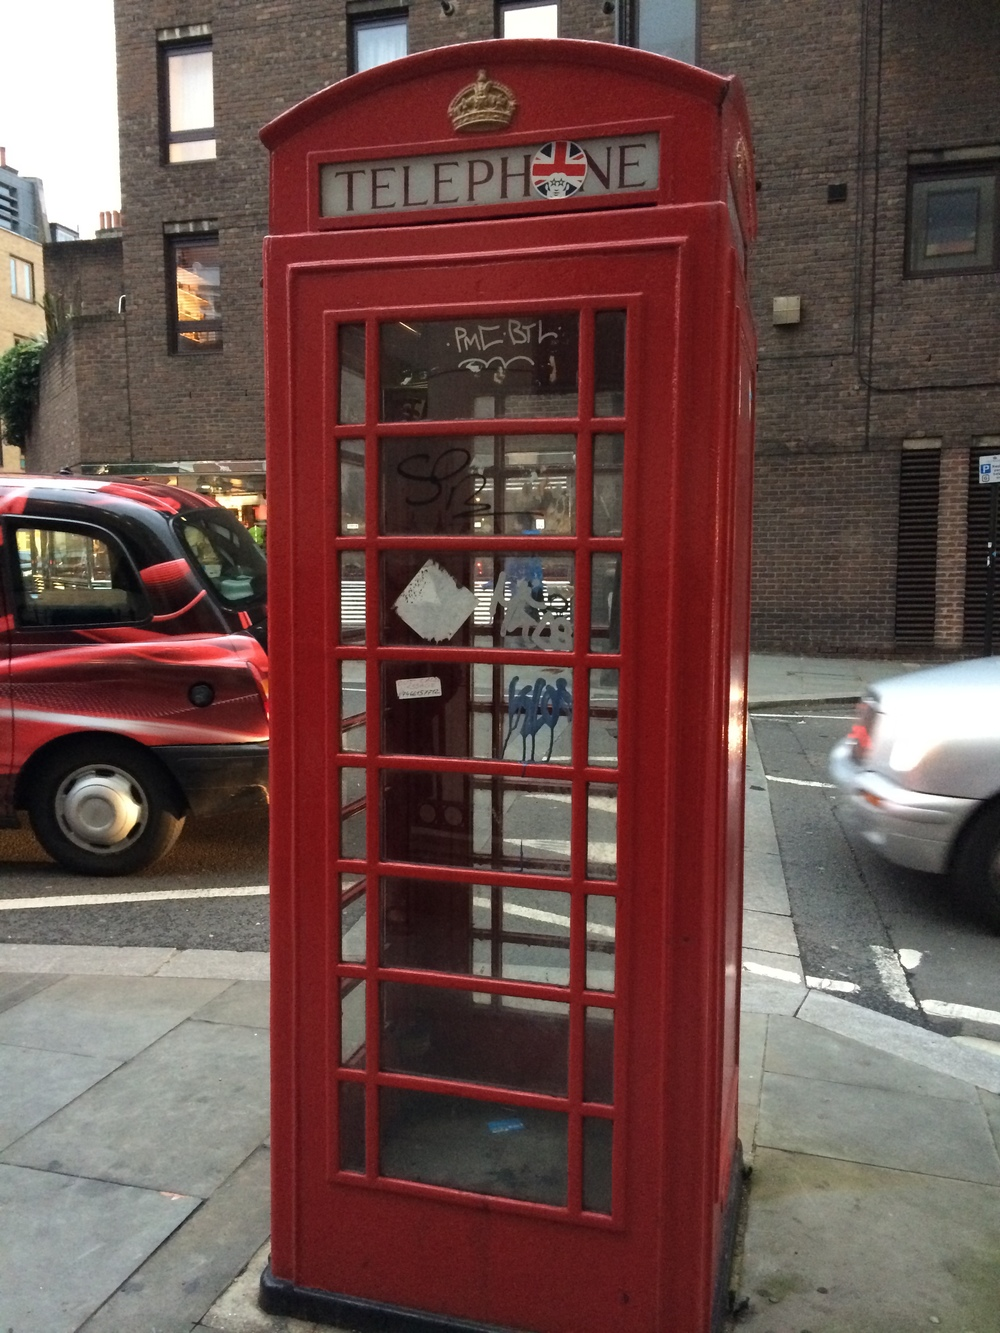 This iconic London telephone booth, complete with graffiti!